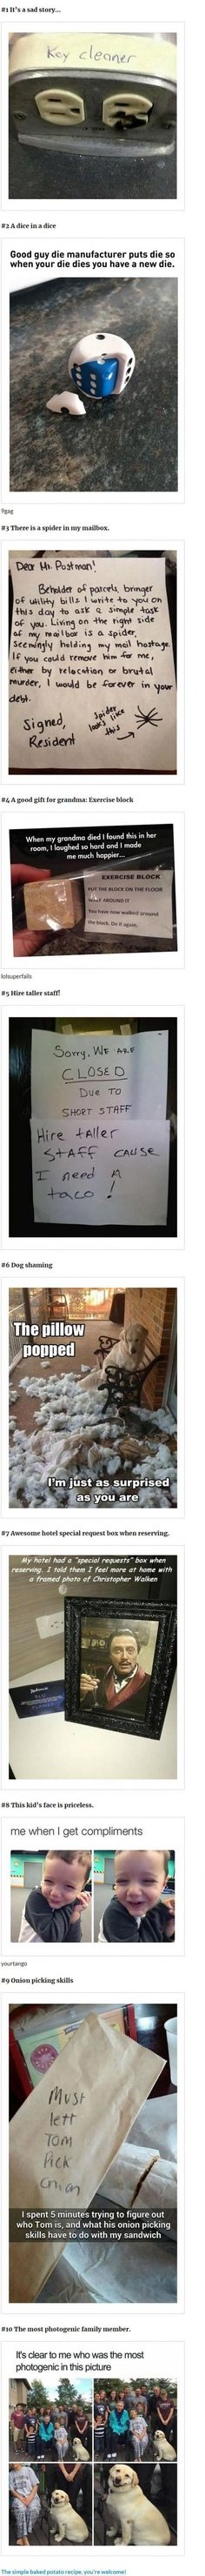 Funny Memes To Brighten Your Day